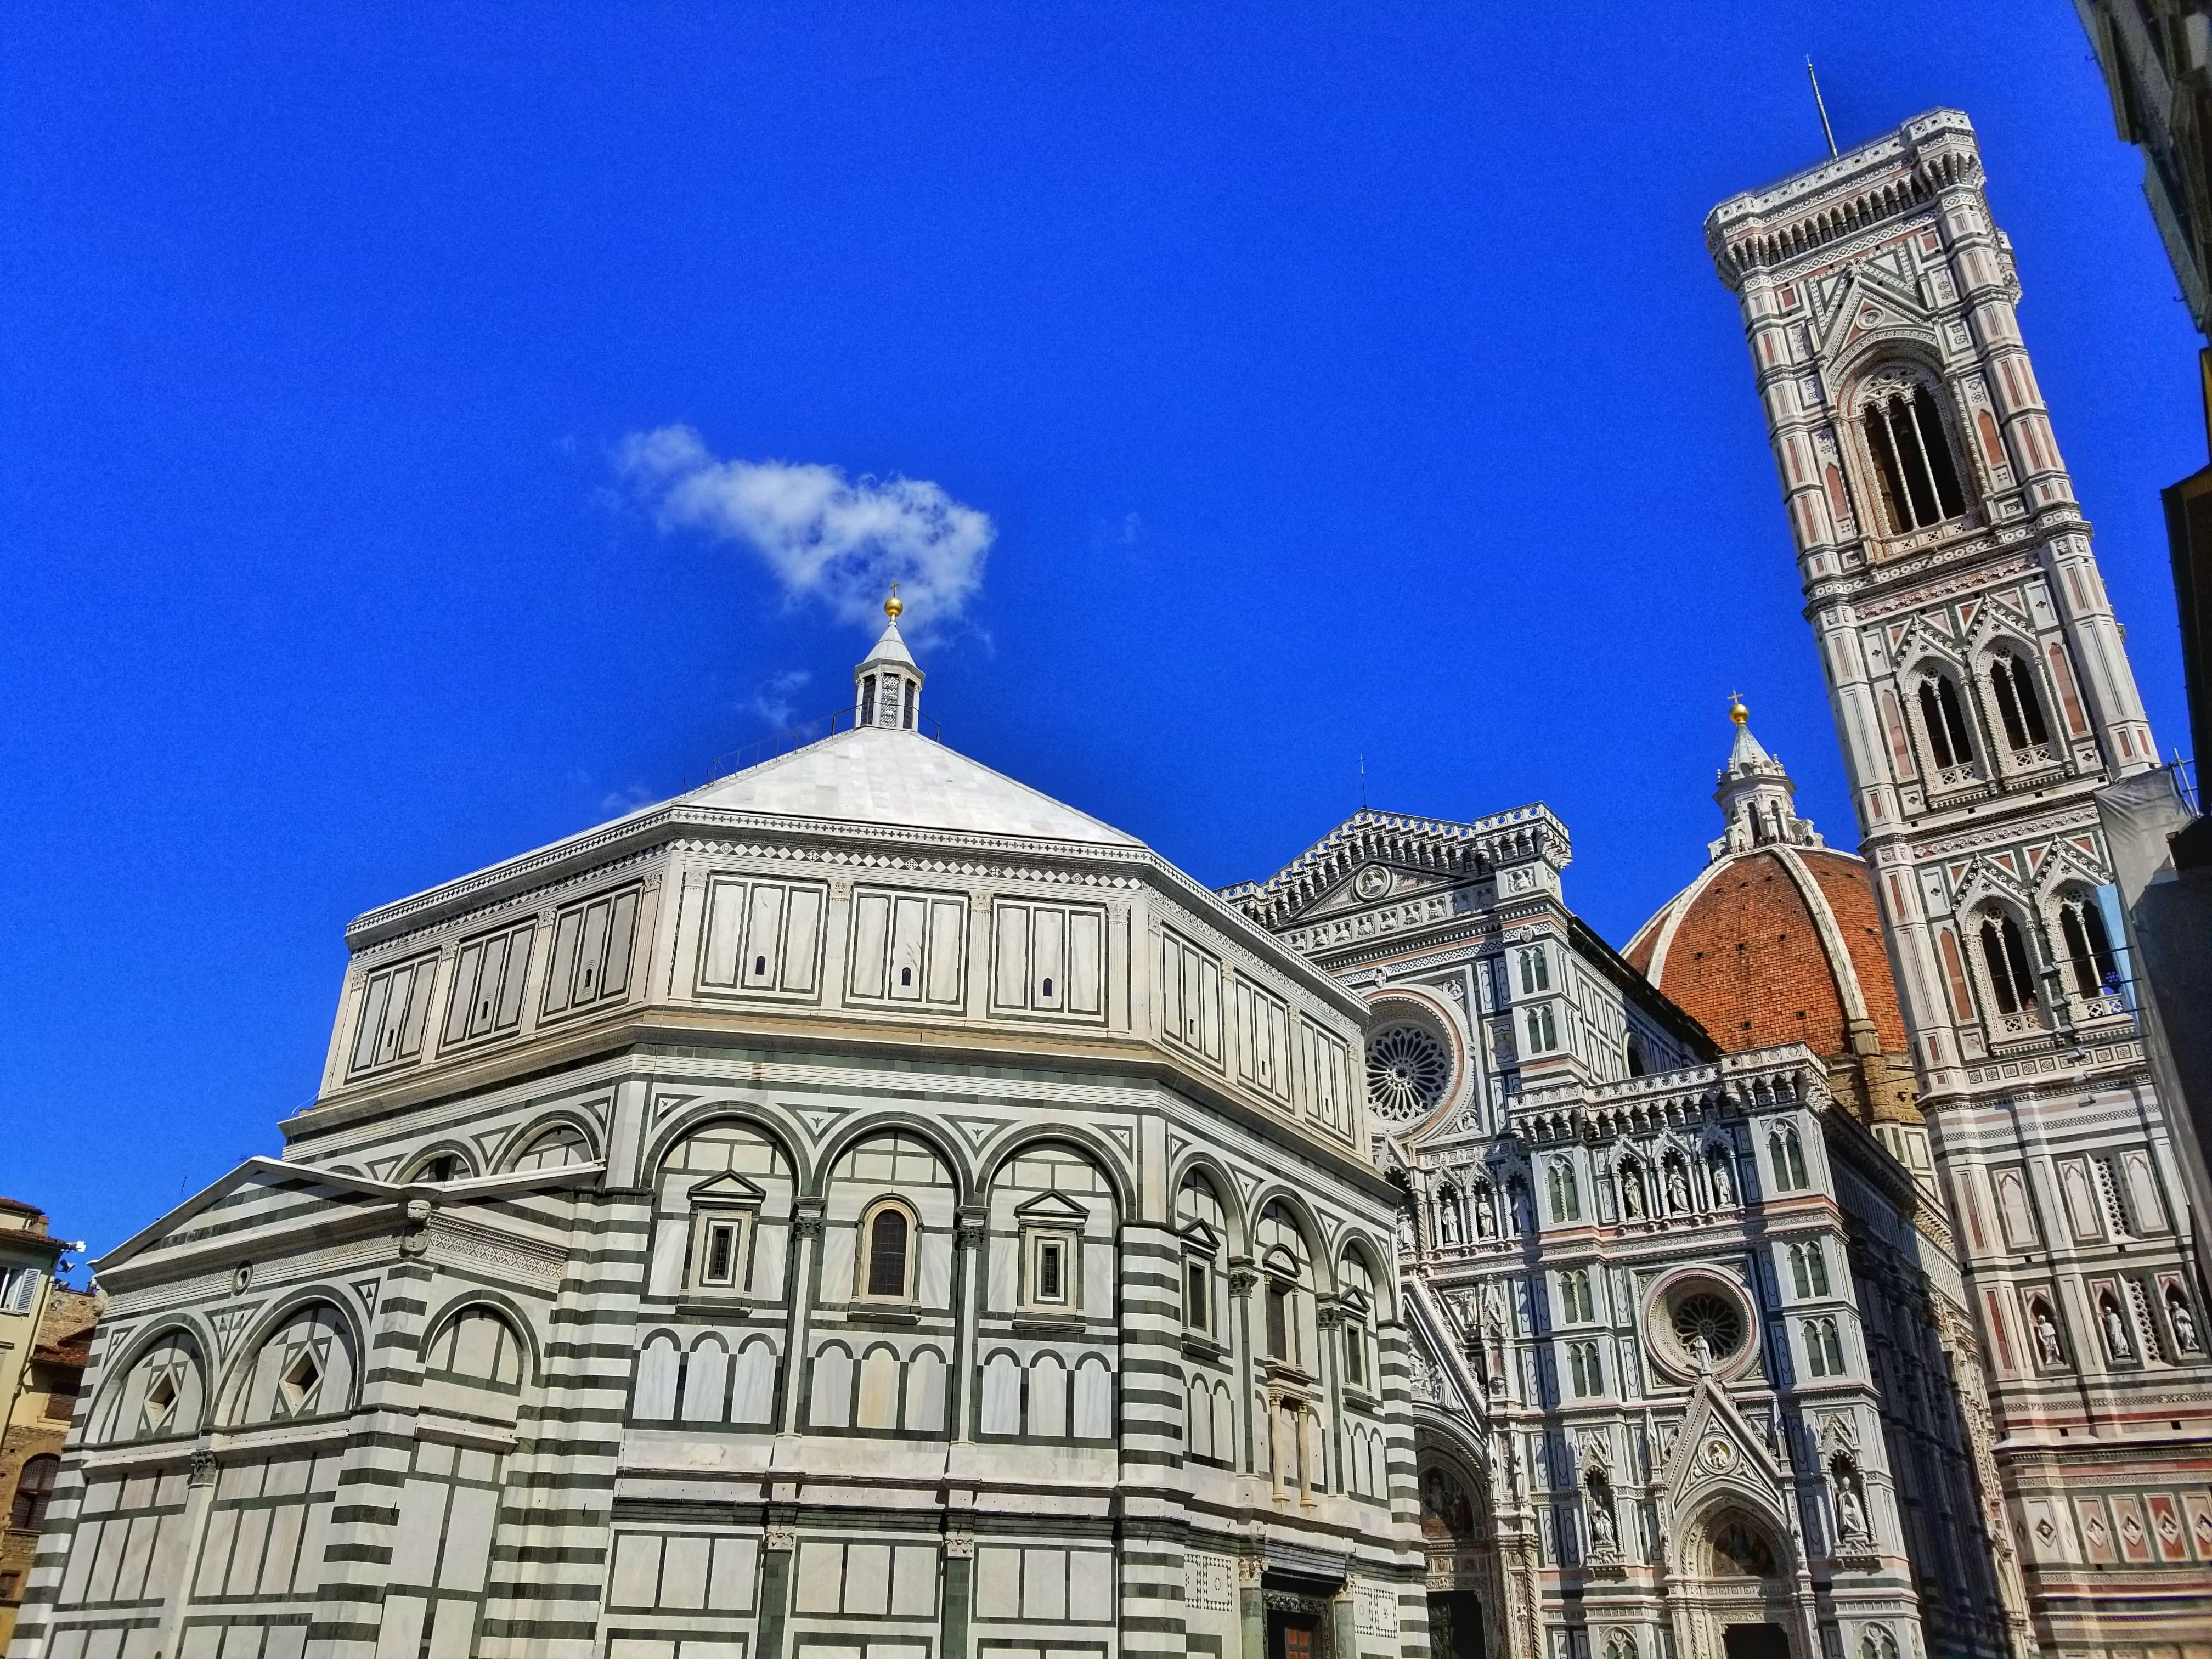 Italy 10 Day Itinerary - Florence Cathedral in Piazza del Duomo